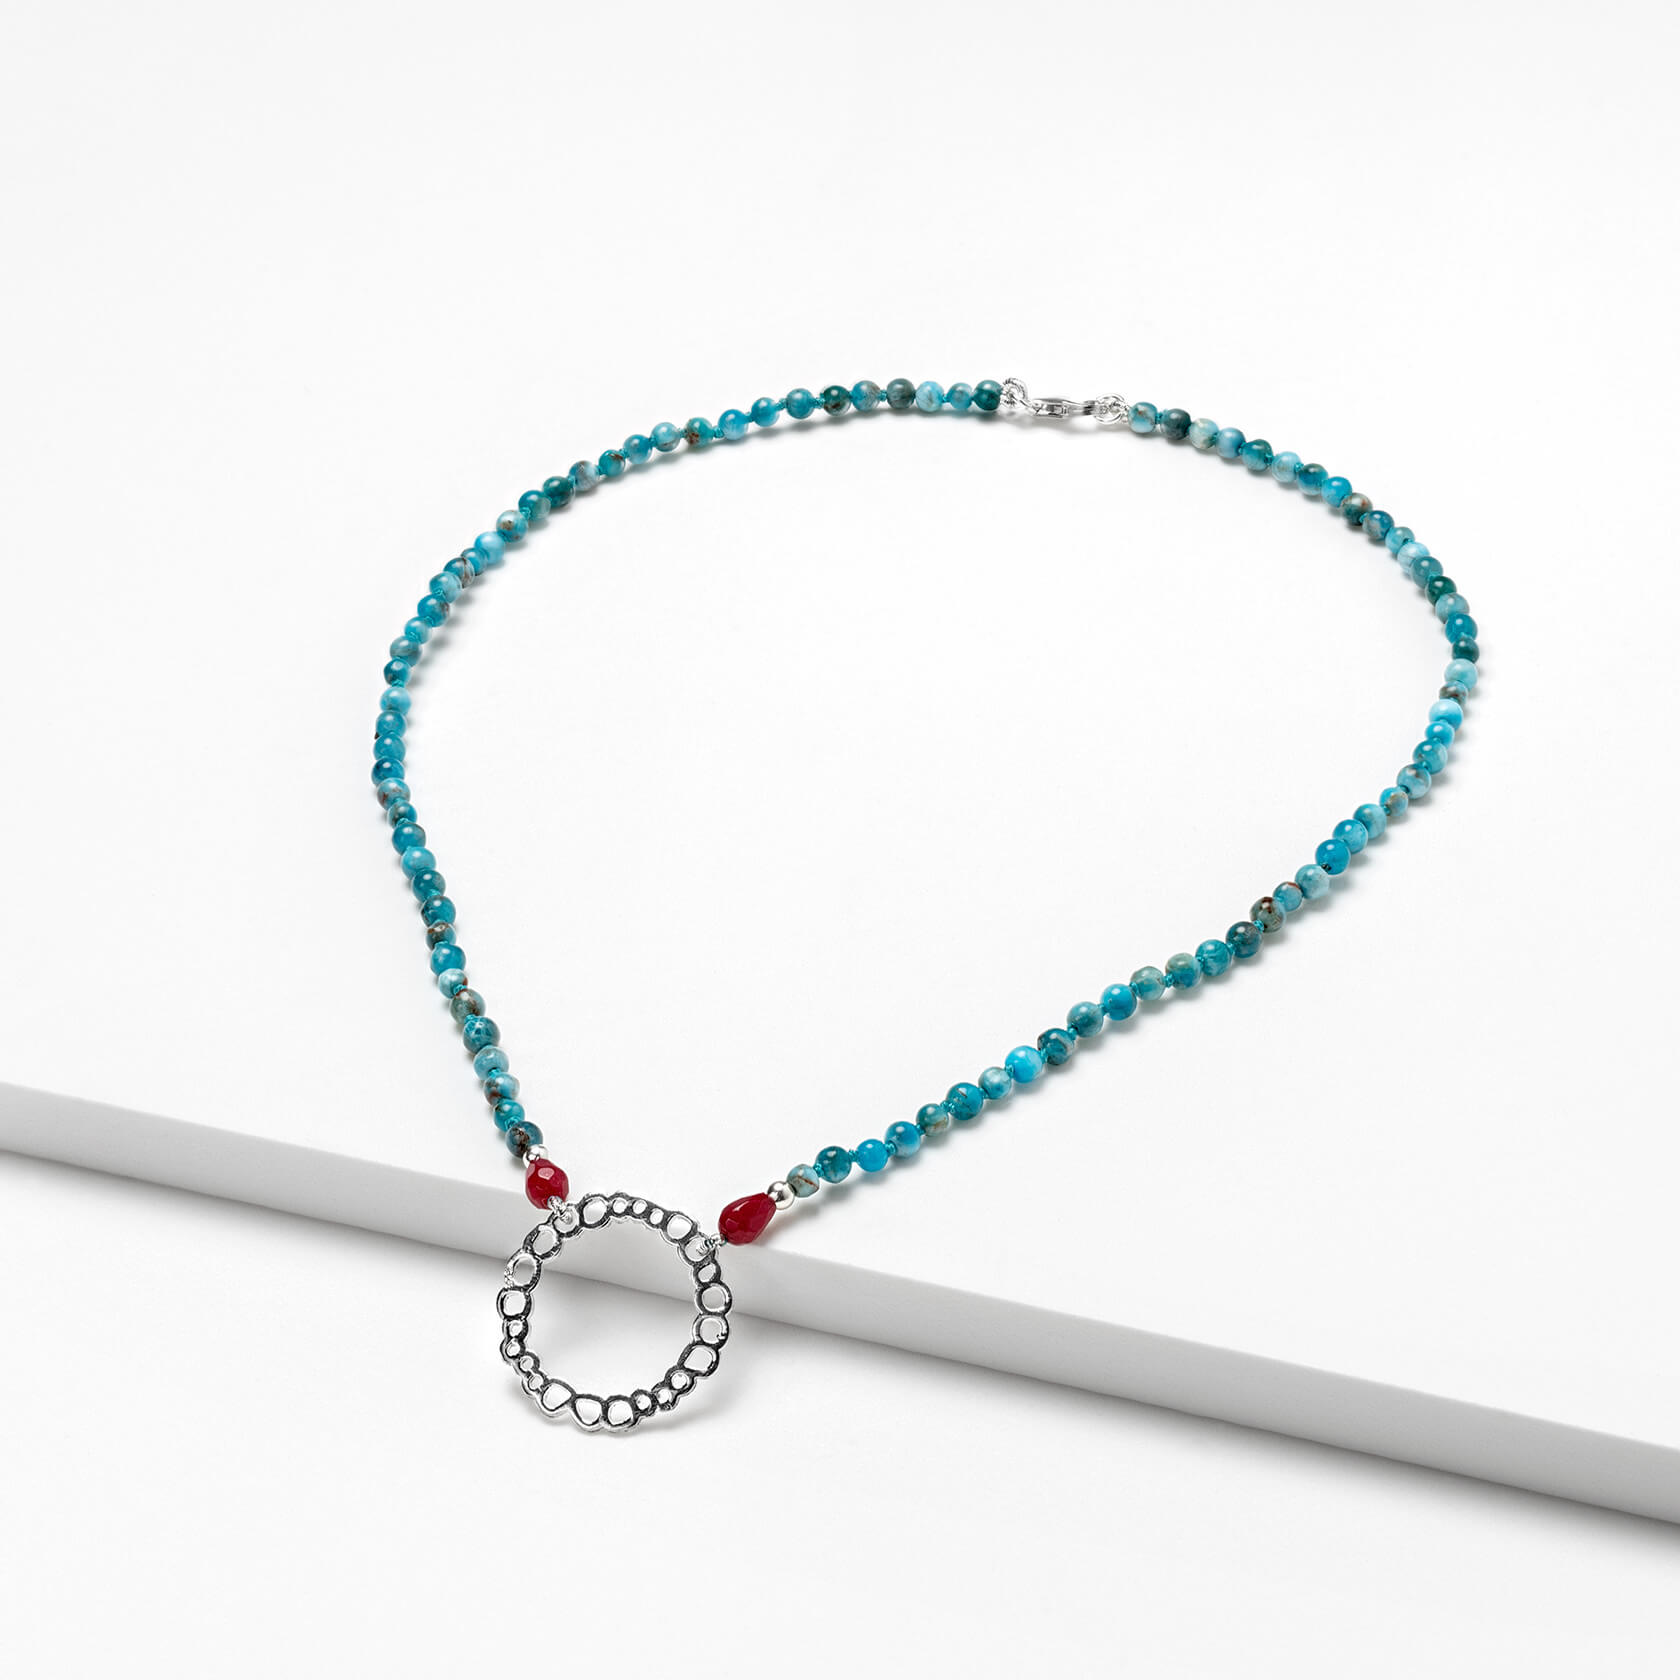 Blue apatite and agate necklace